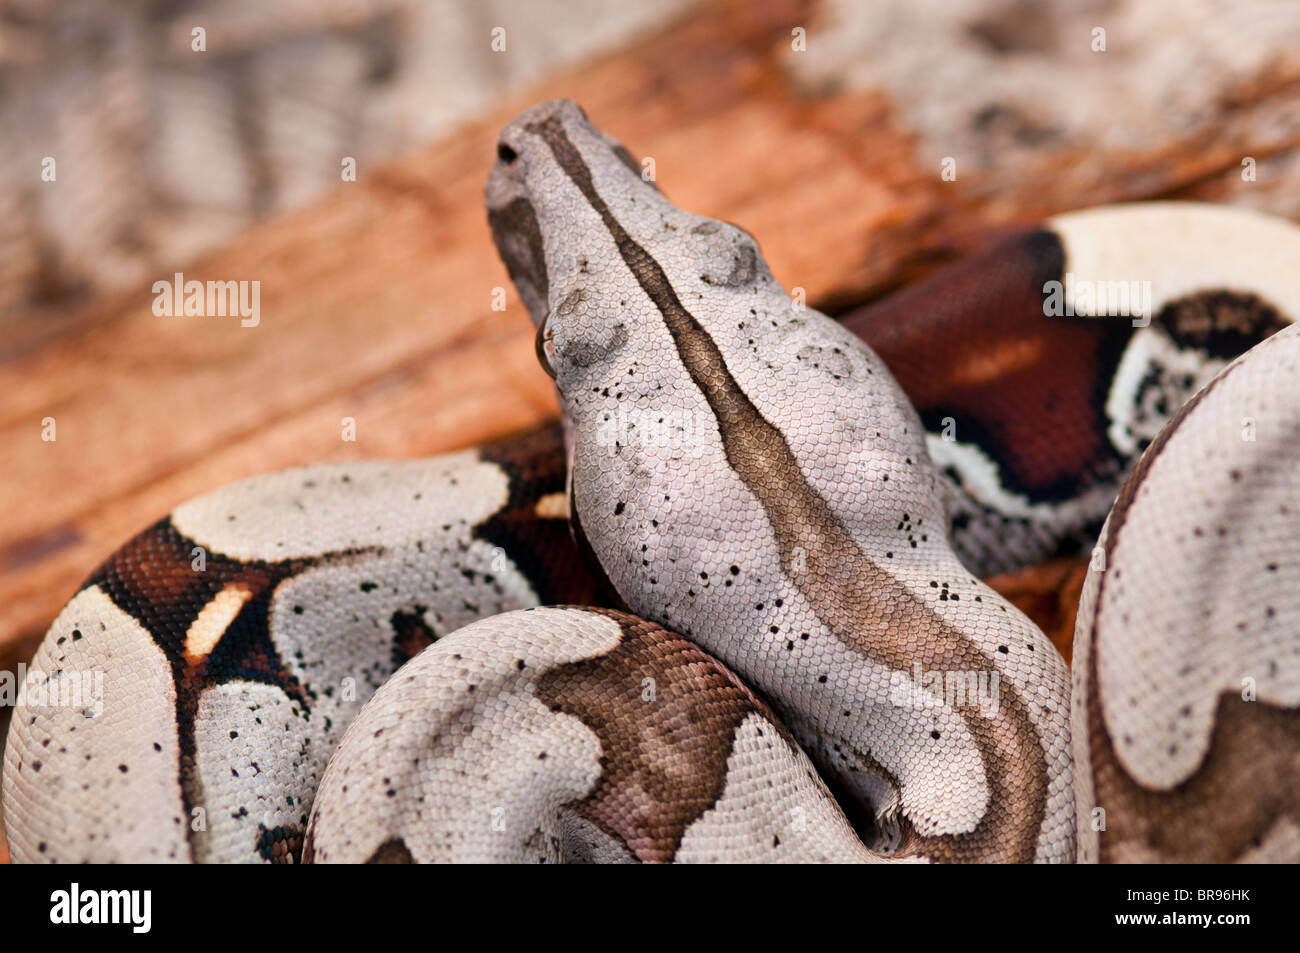 Young Red Tailed Boa constrictor from Suriname Stock Photo